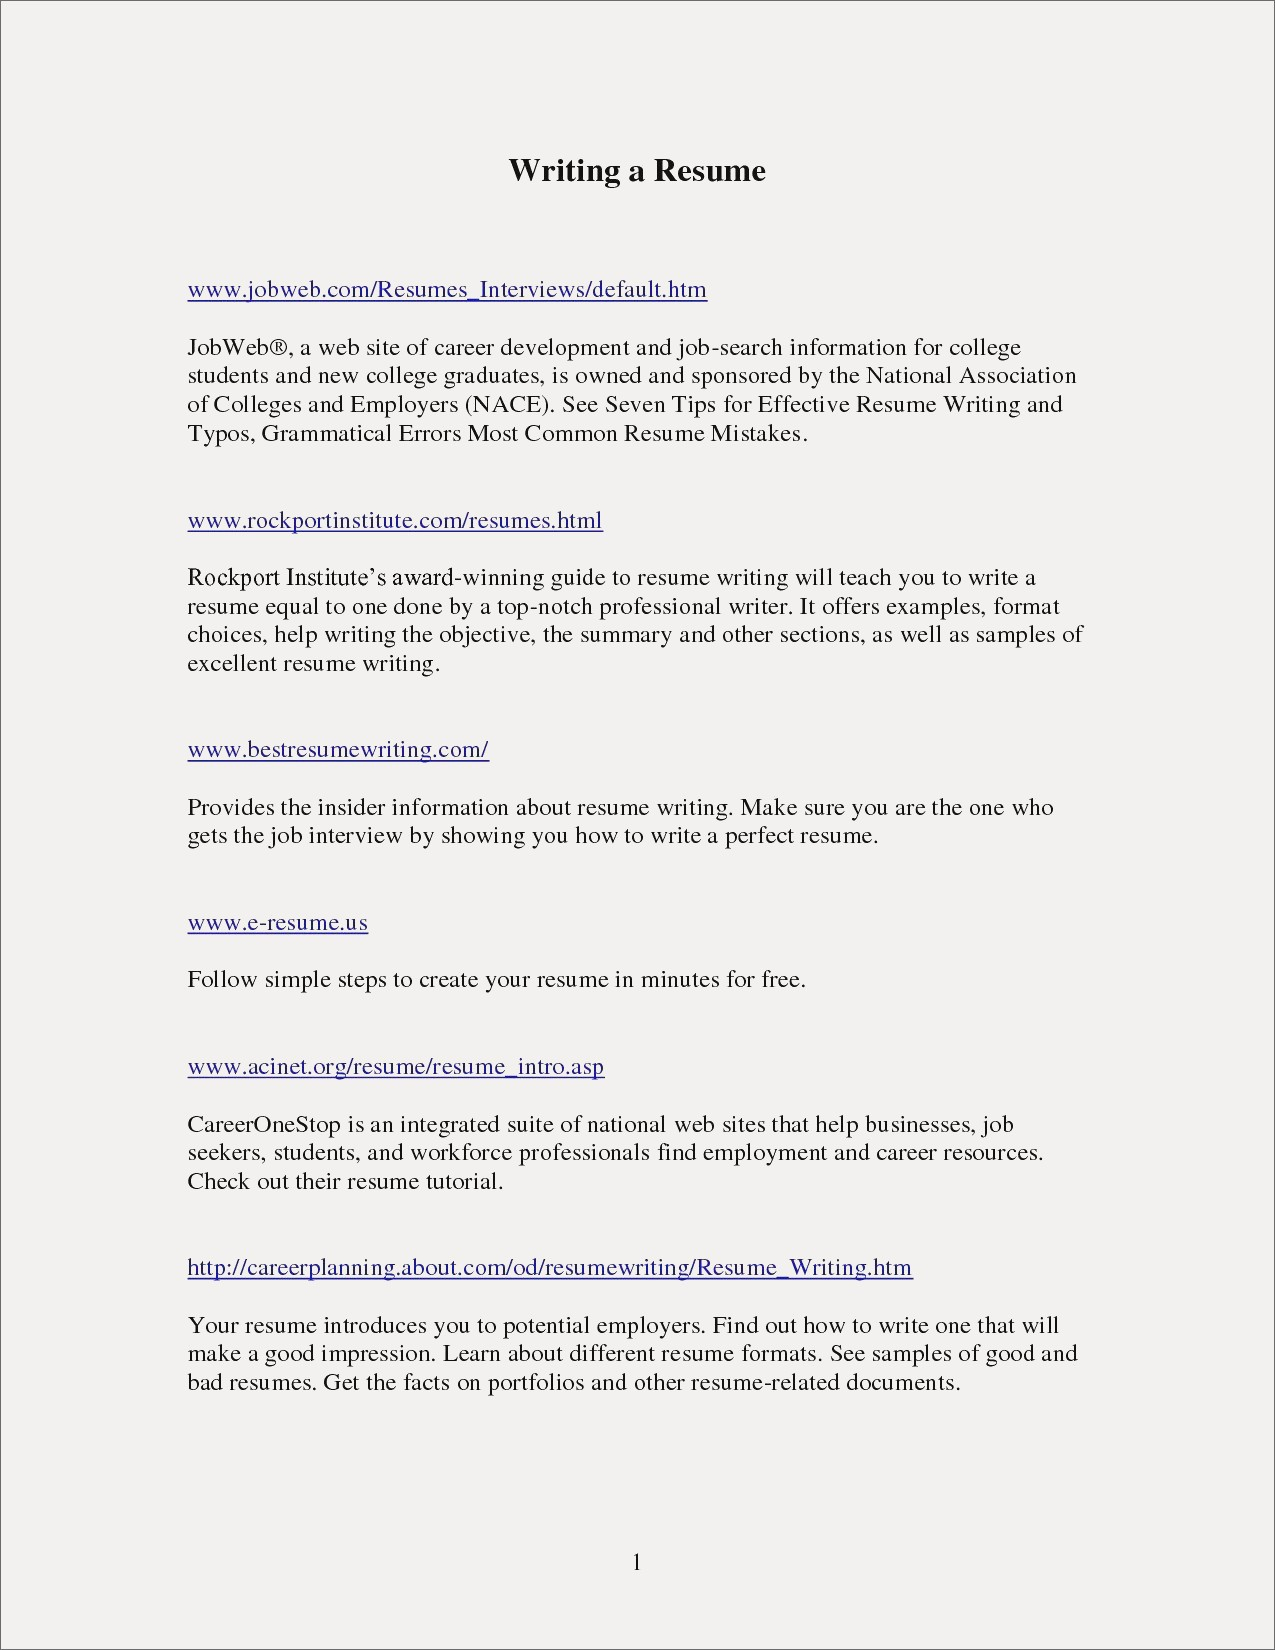 Resume Writing Guide - How to Write An Effective Resume Examples Refrence Sample Entry